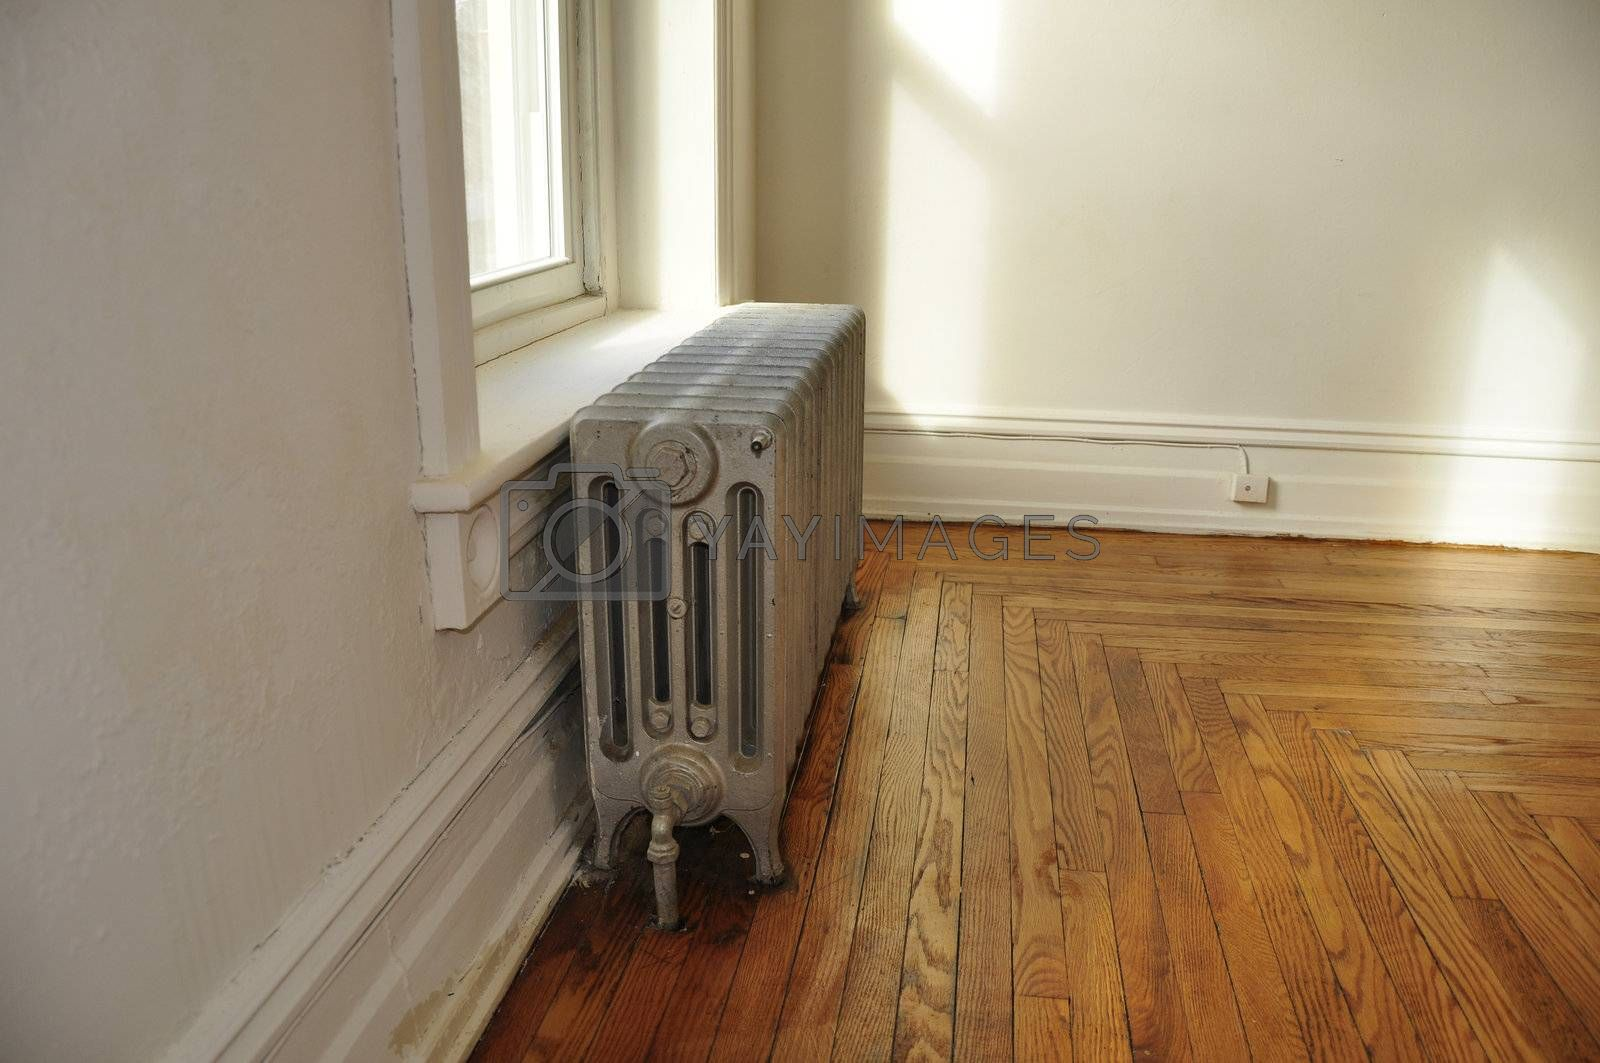 old radiator in an empty historic home